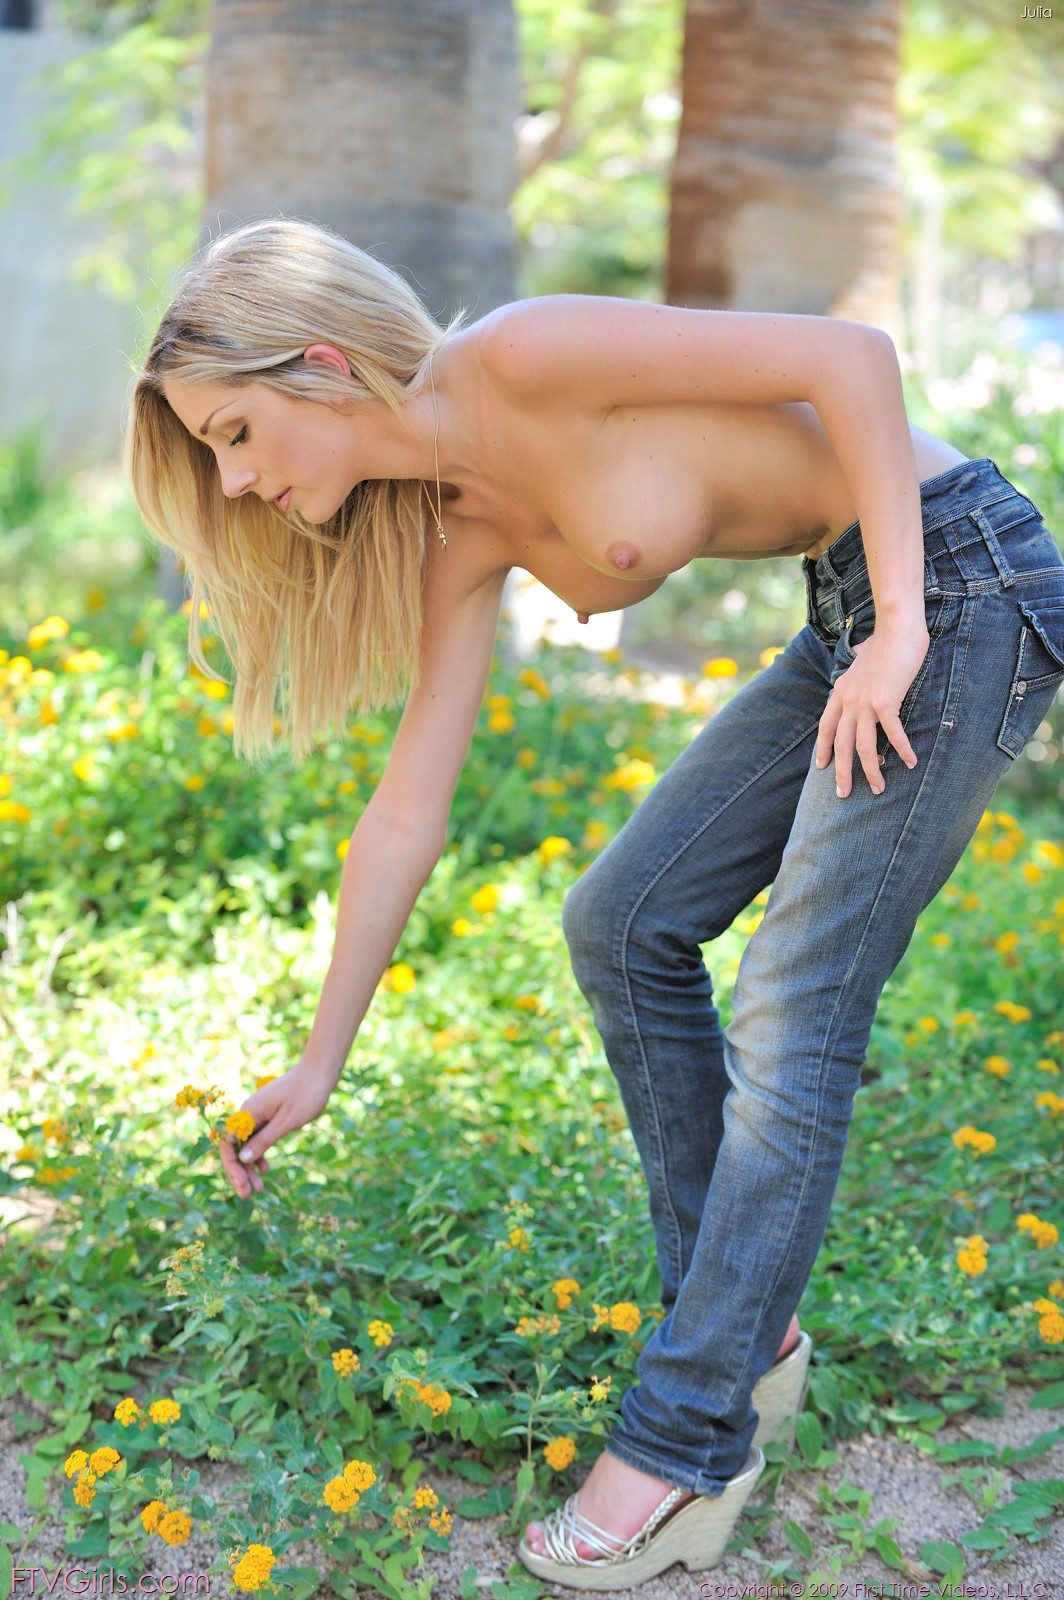 Topless girls in jeans at nature #9